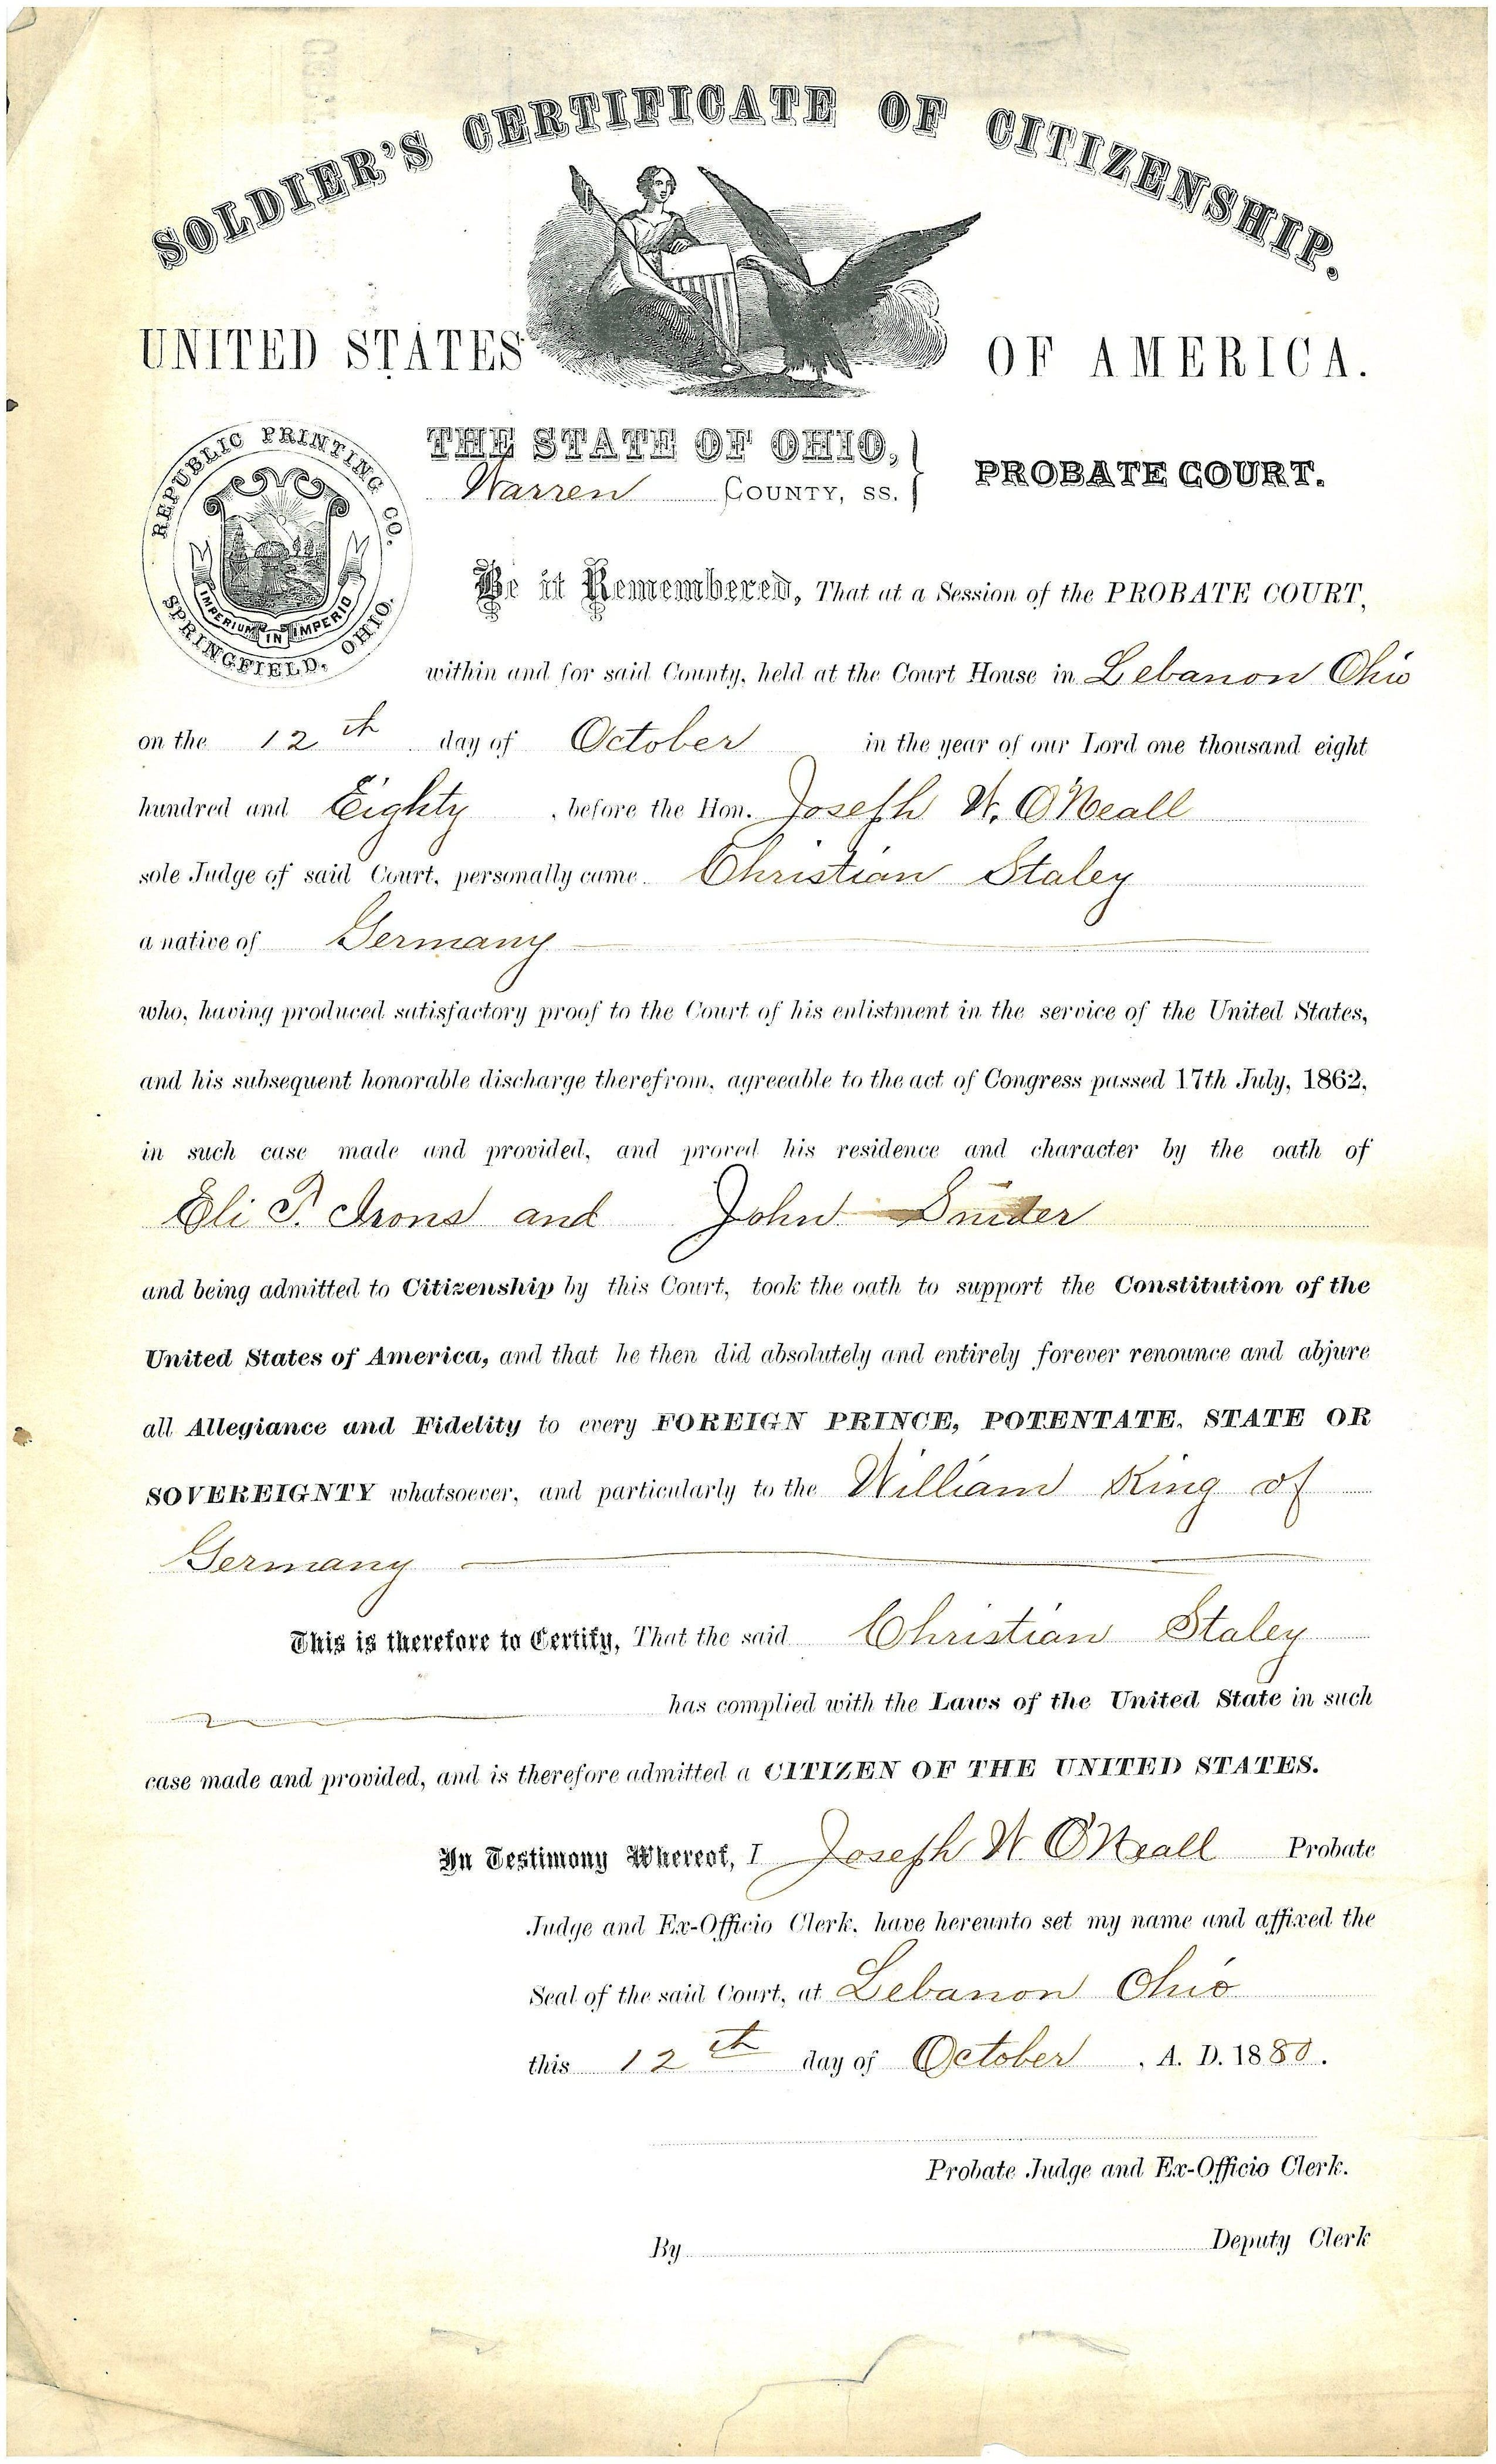 Soldiers Certificate Of Citizenship Warren County Records Center